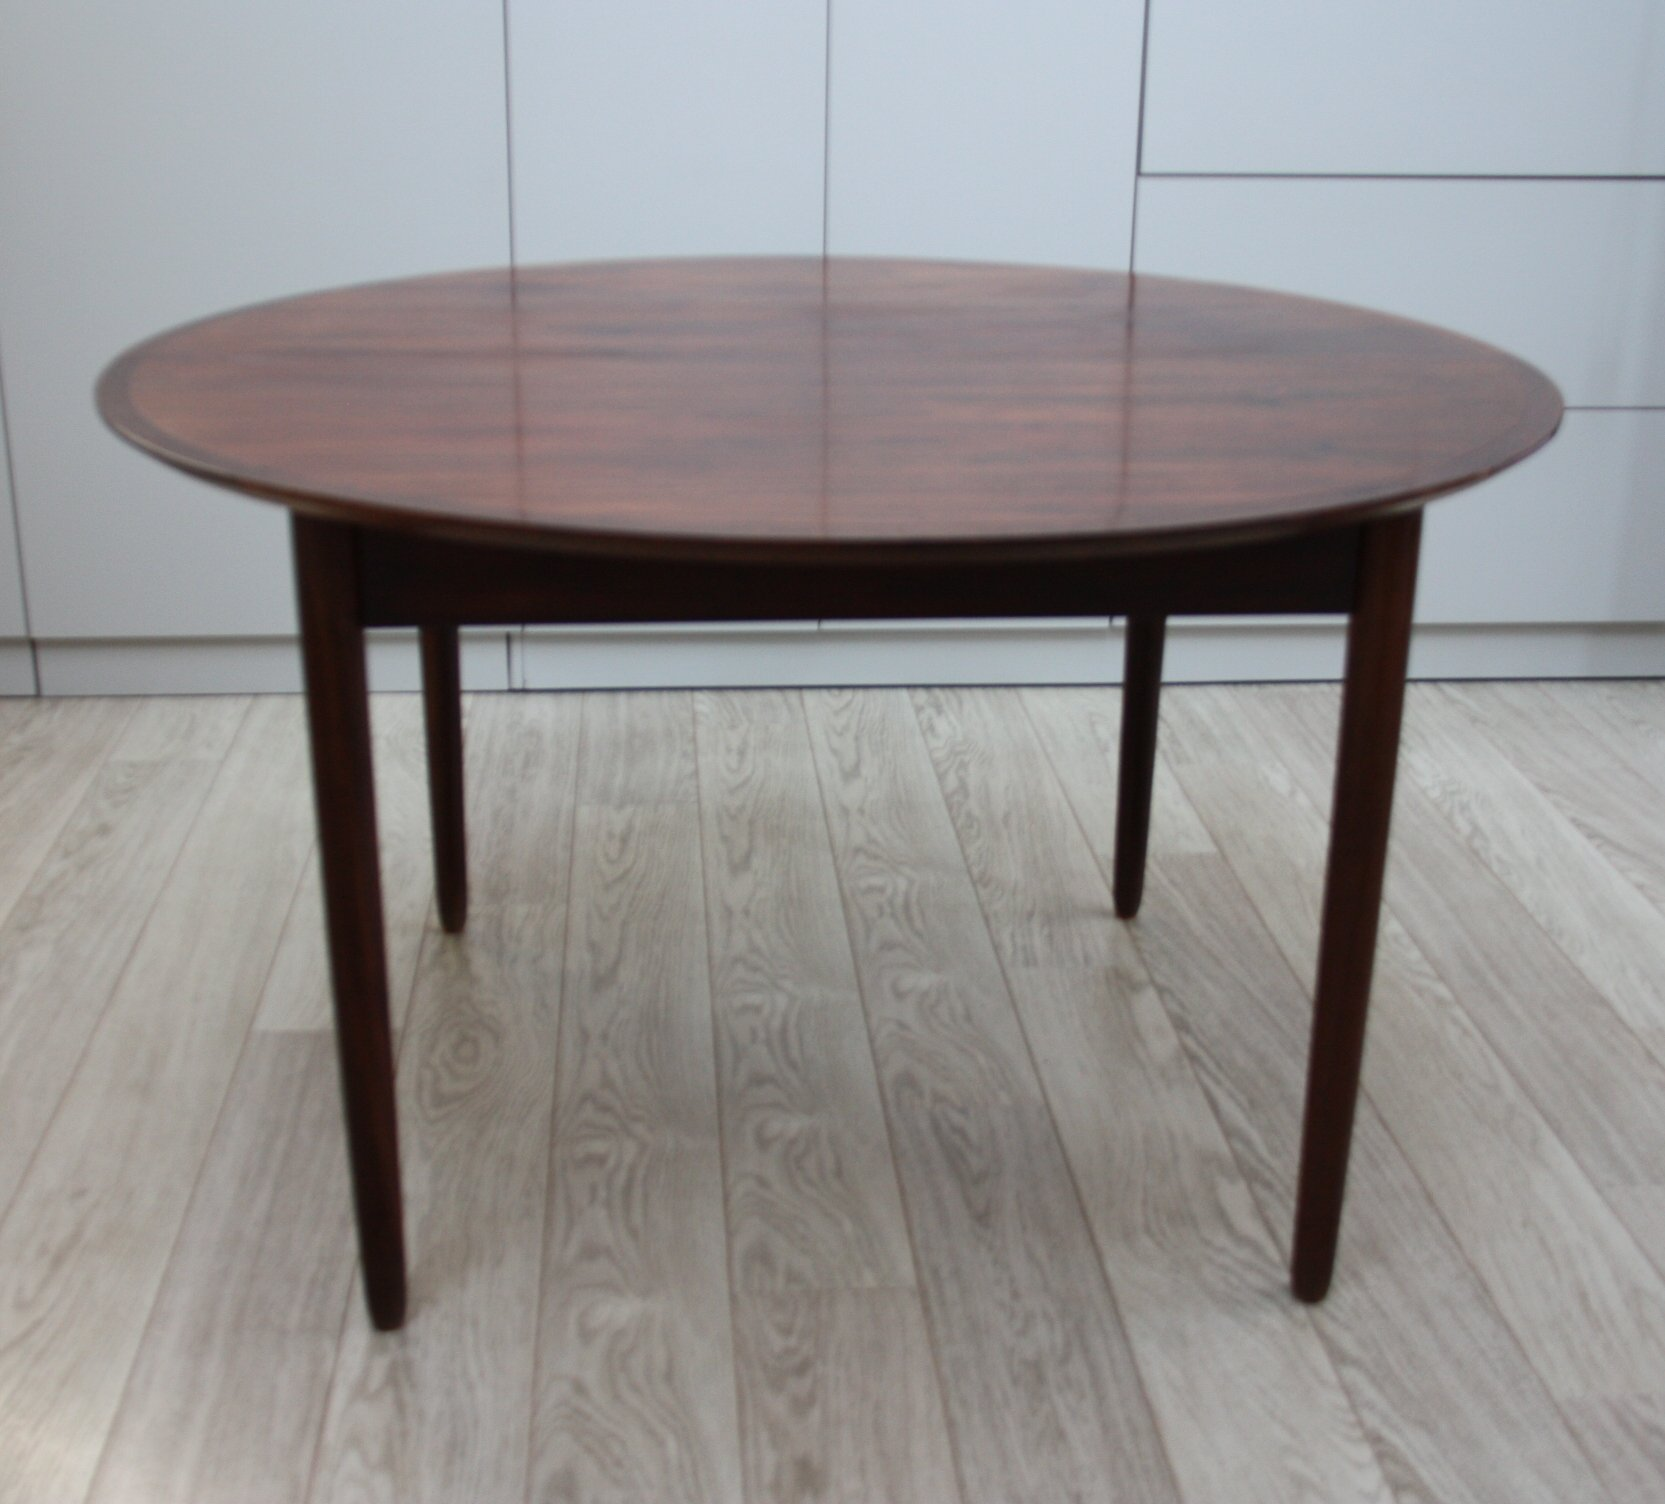 Vintage Round To Oval Extendable Dining Table In Rosewood 1960s 85713